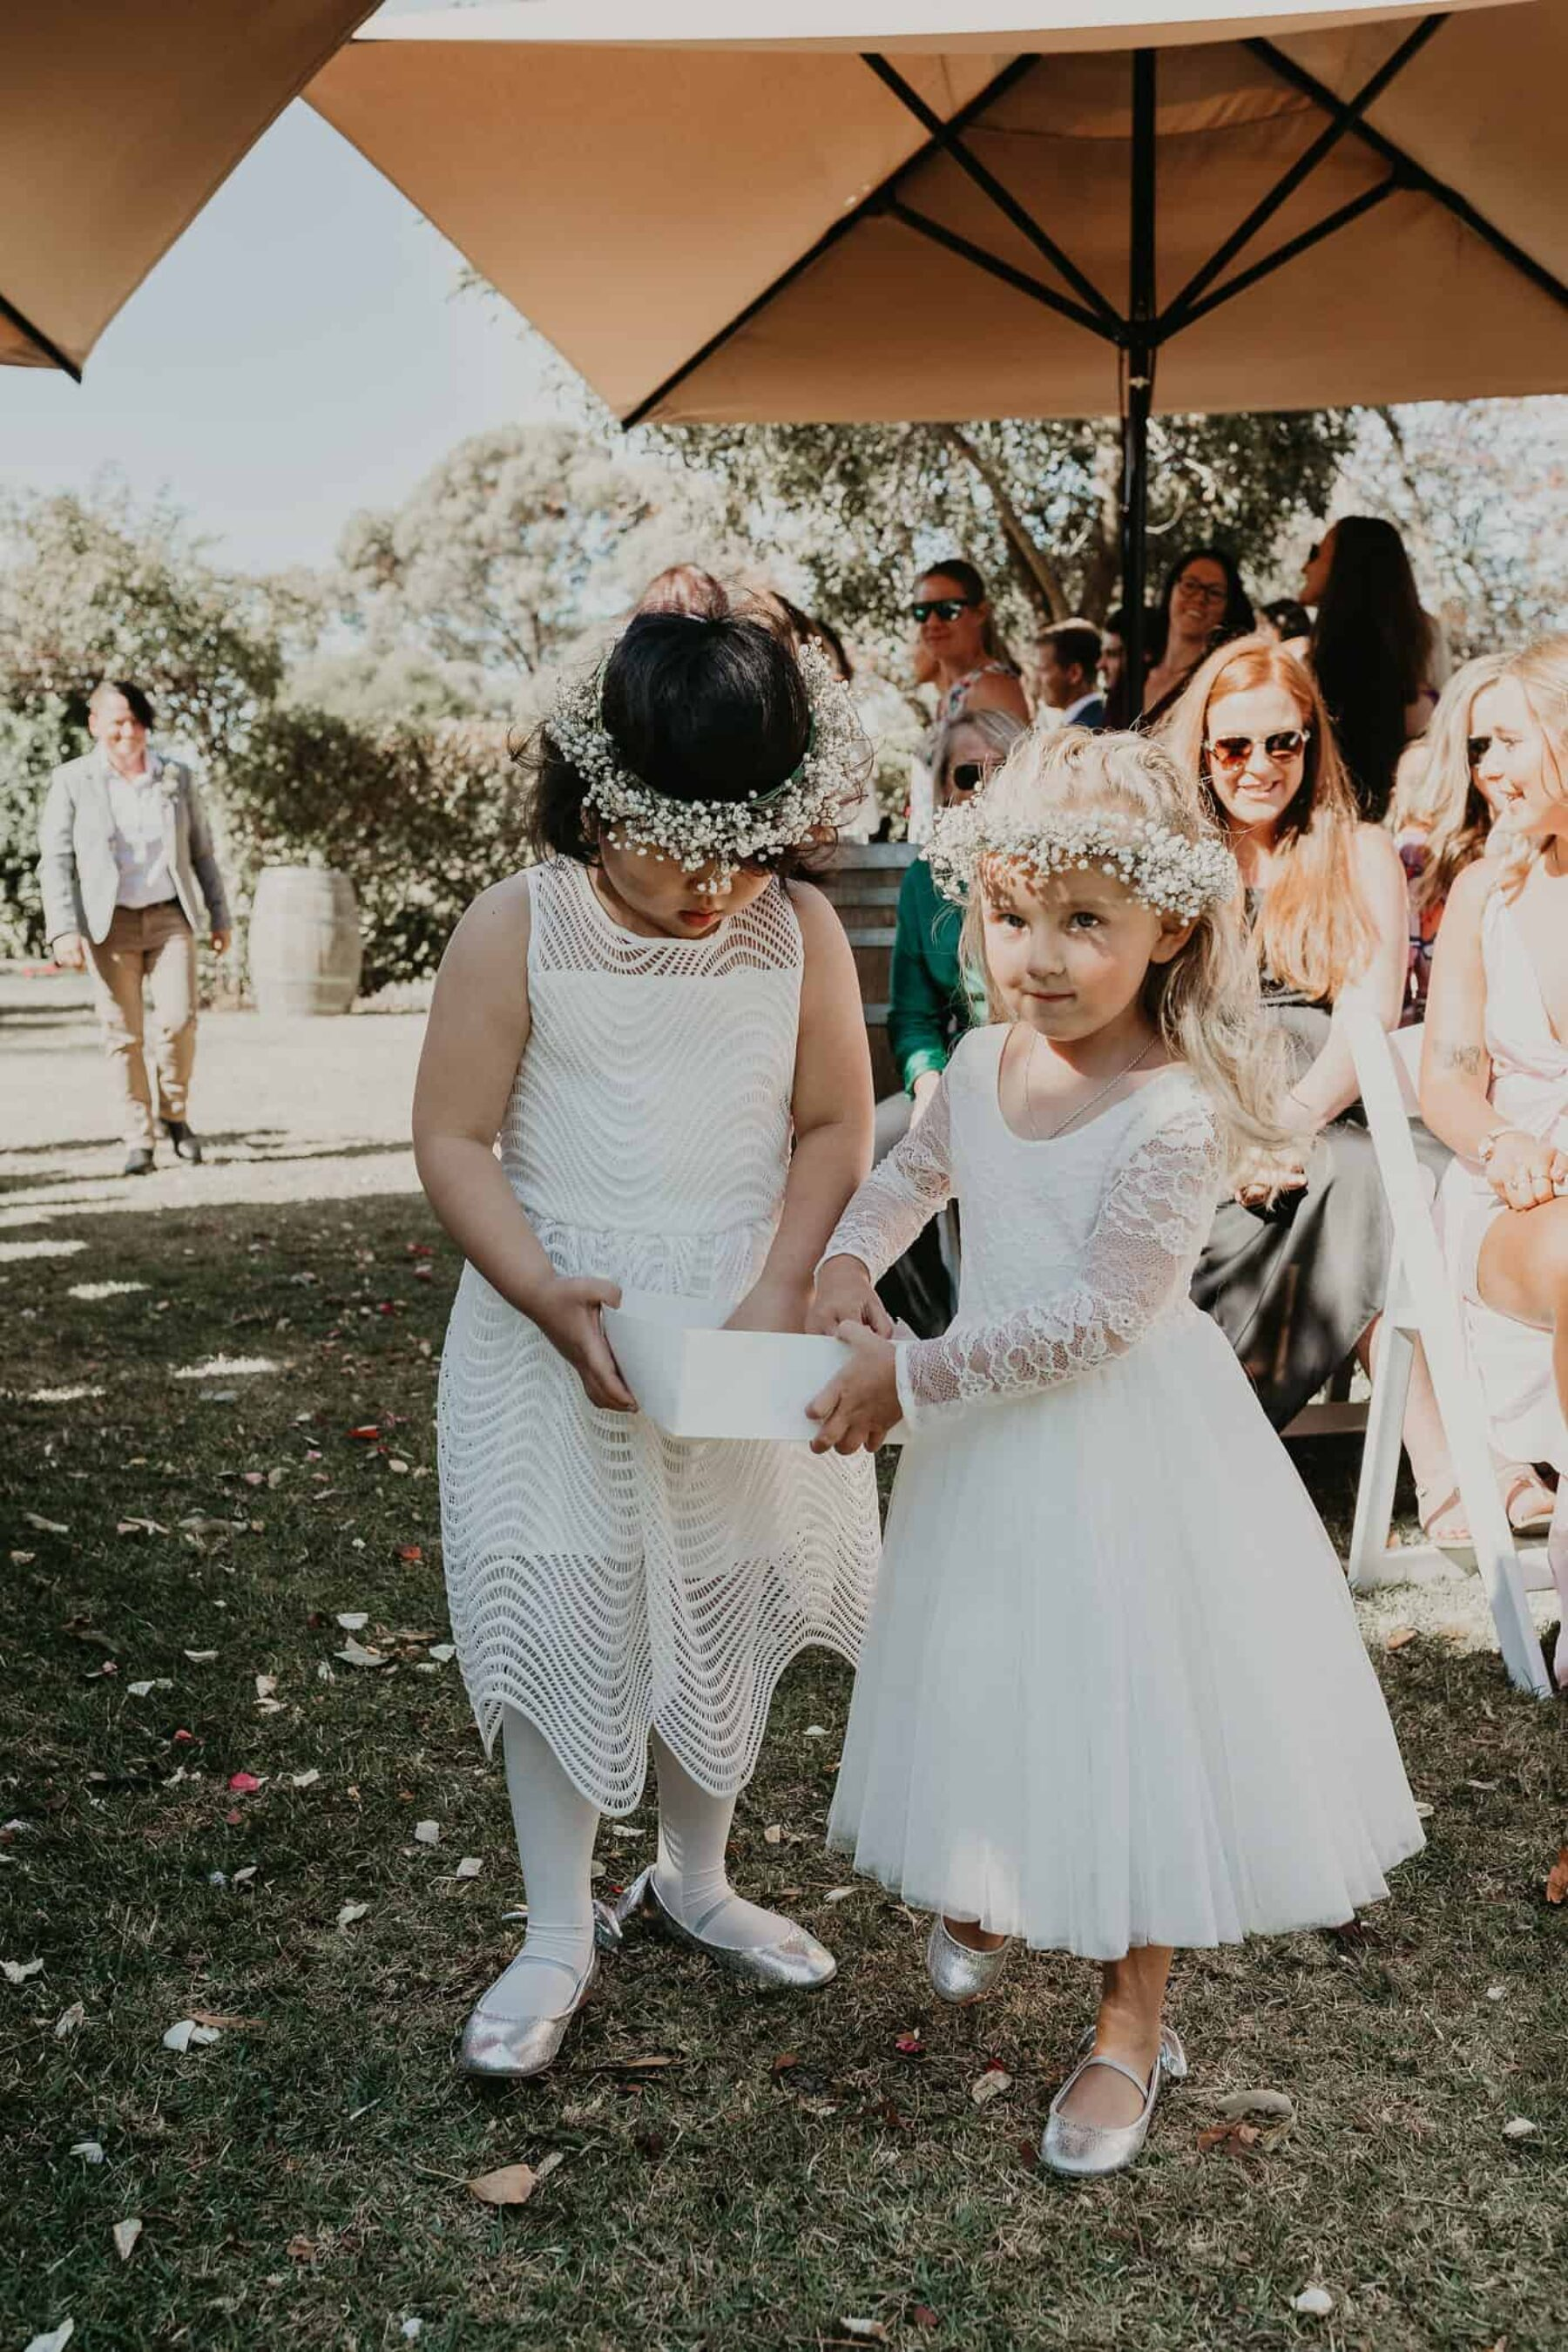 flower girls with baby's breath flower crowns